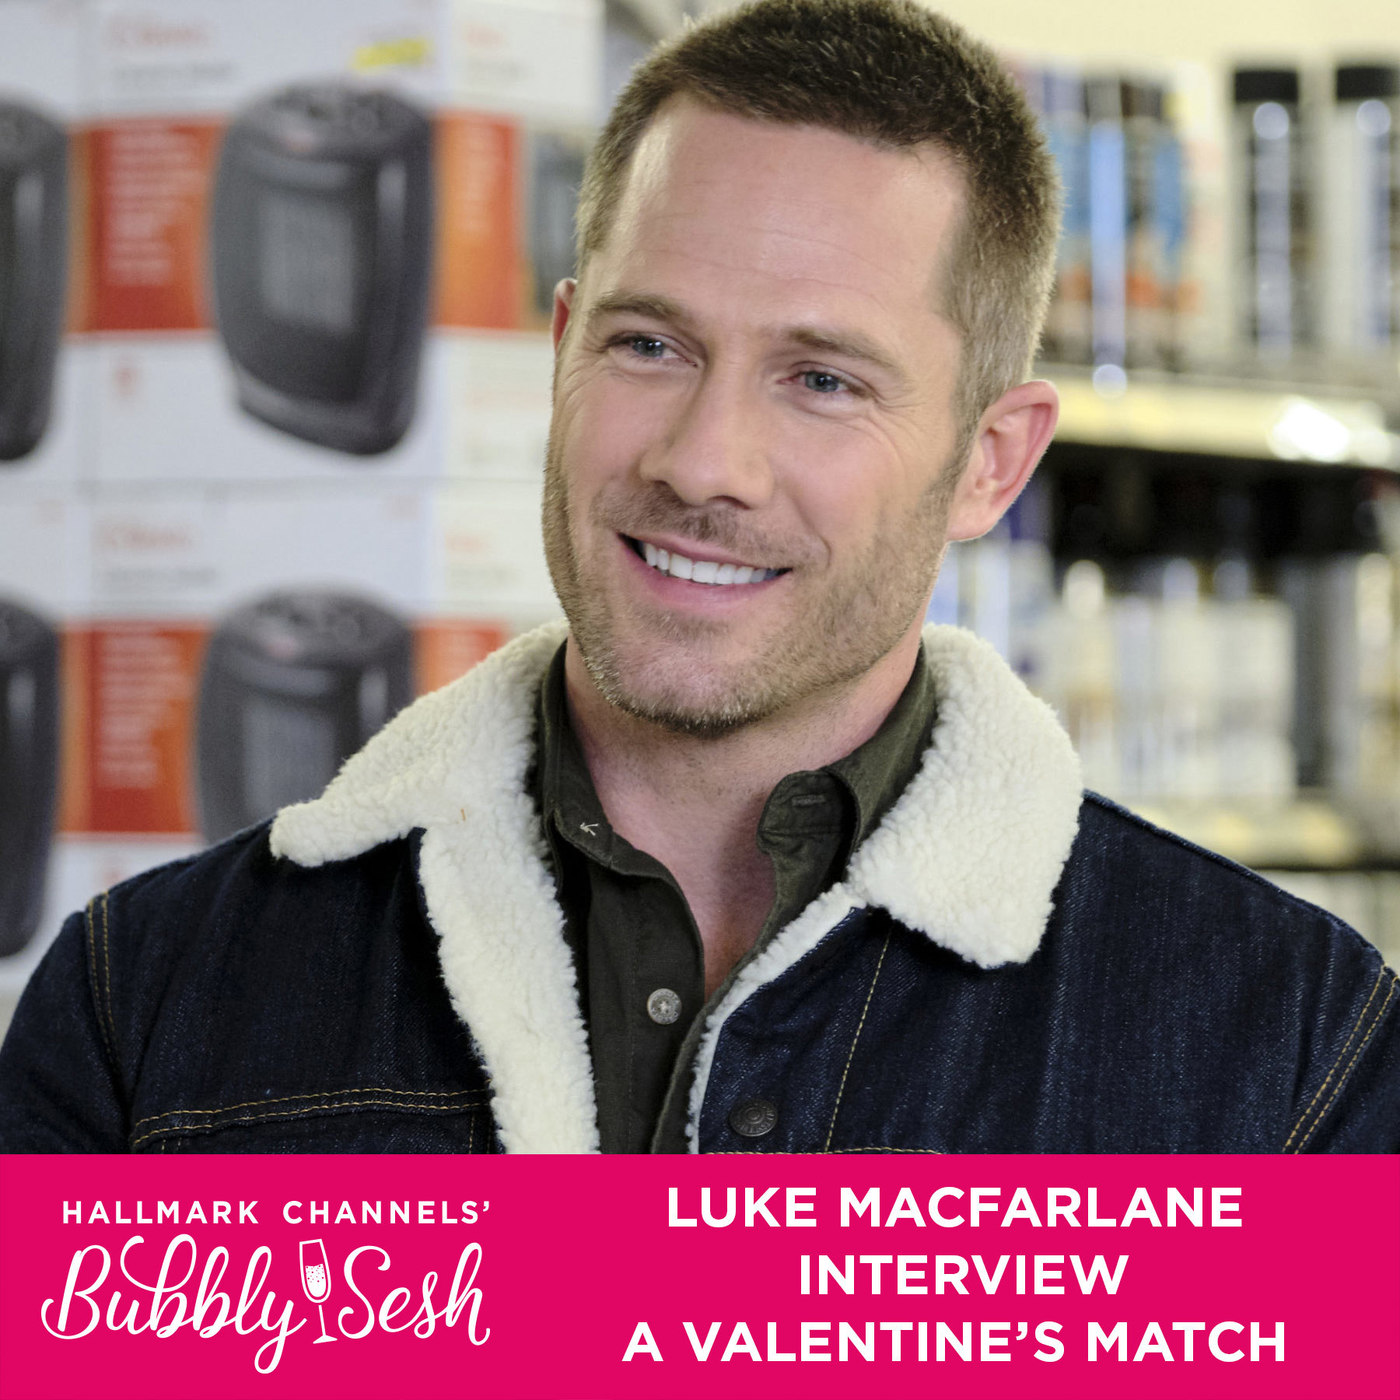 Luke Macfarlane Interview, A Valentine's Match